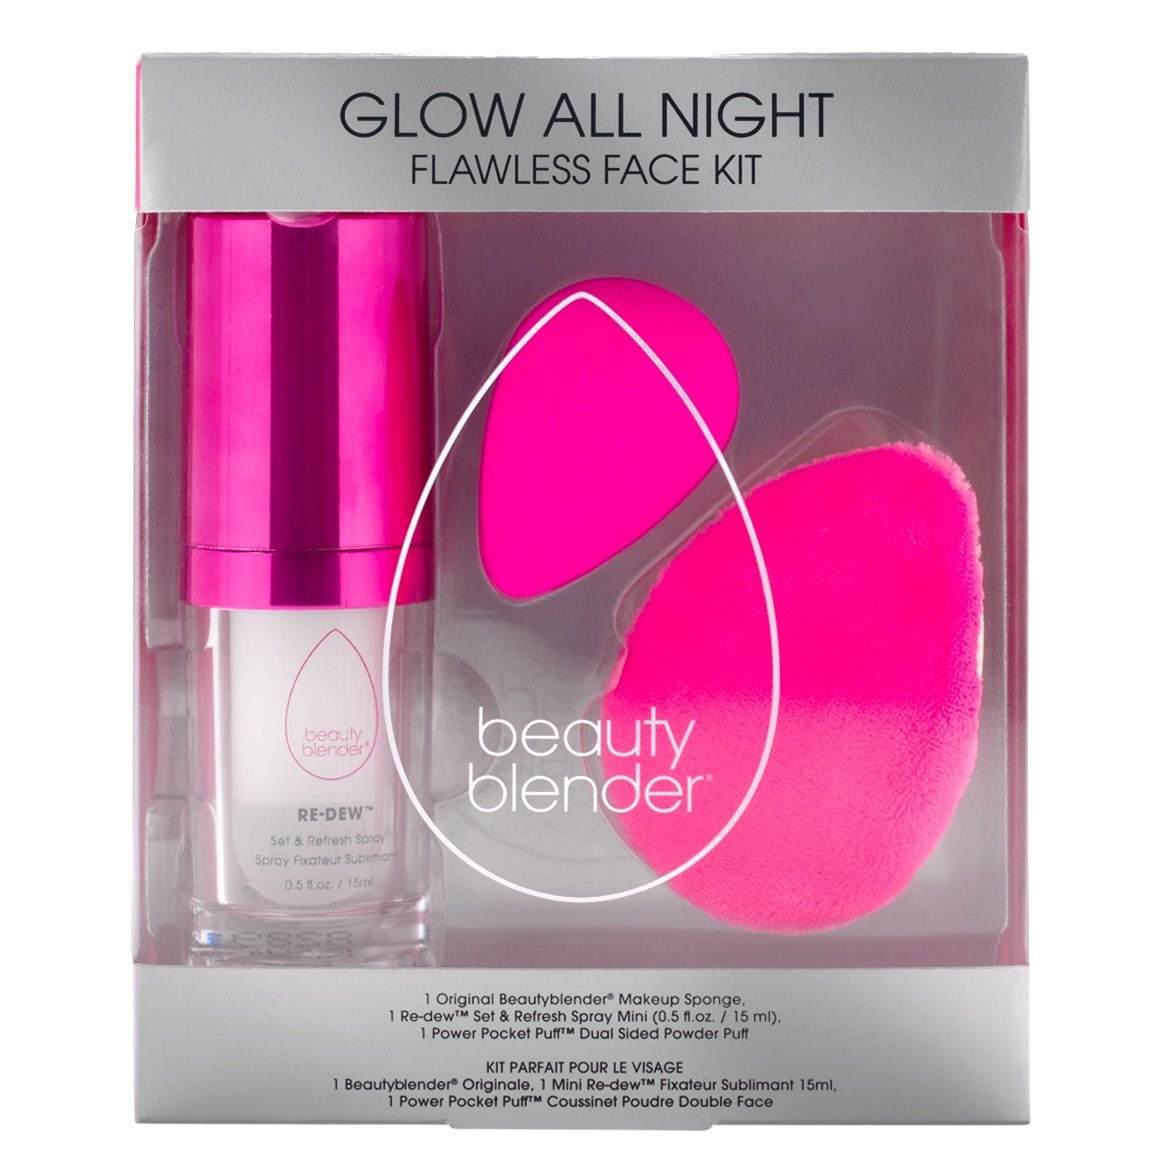 beautyblender Glow All Night Kit product smear.